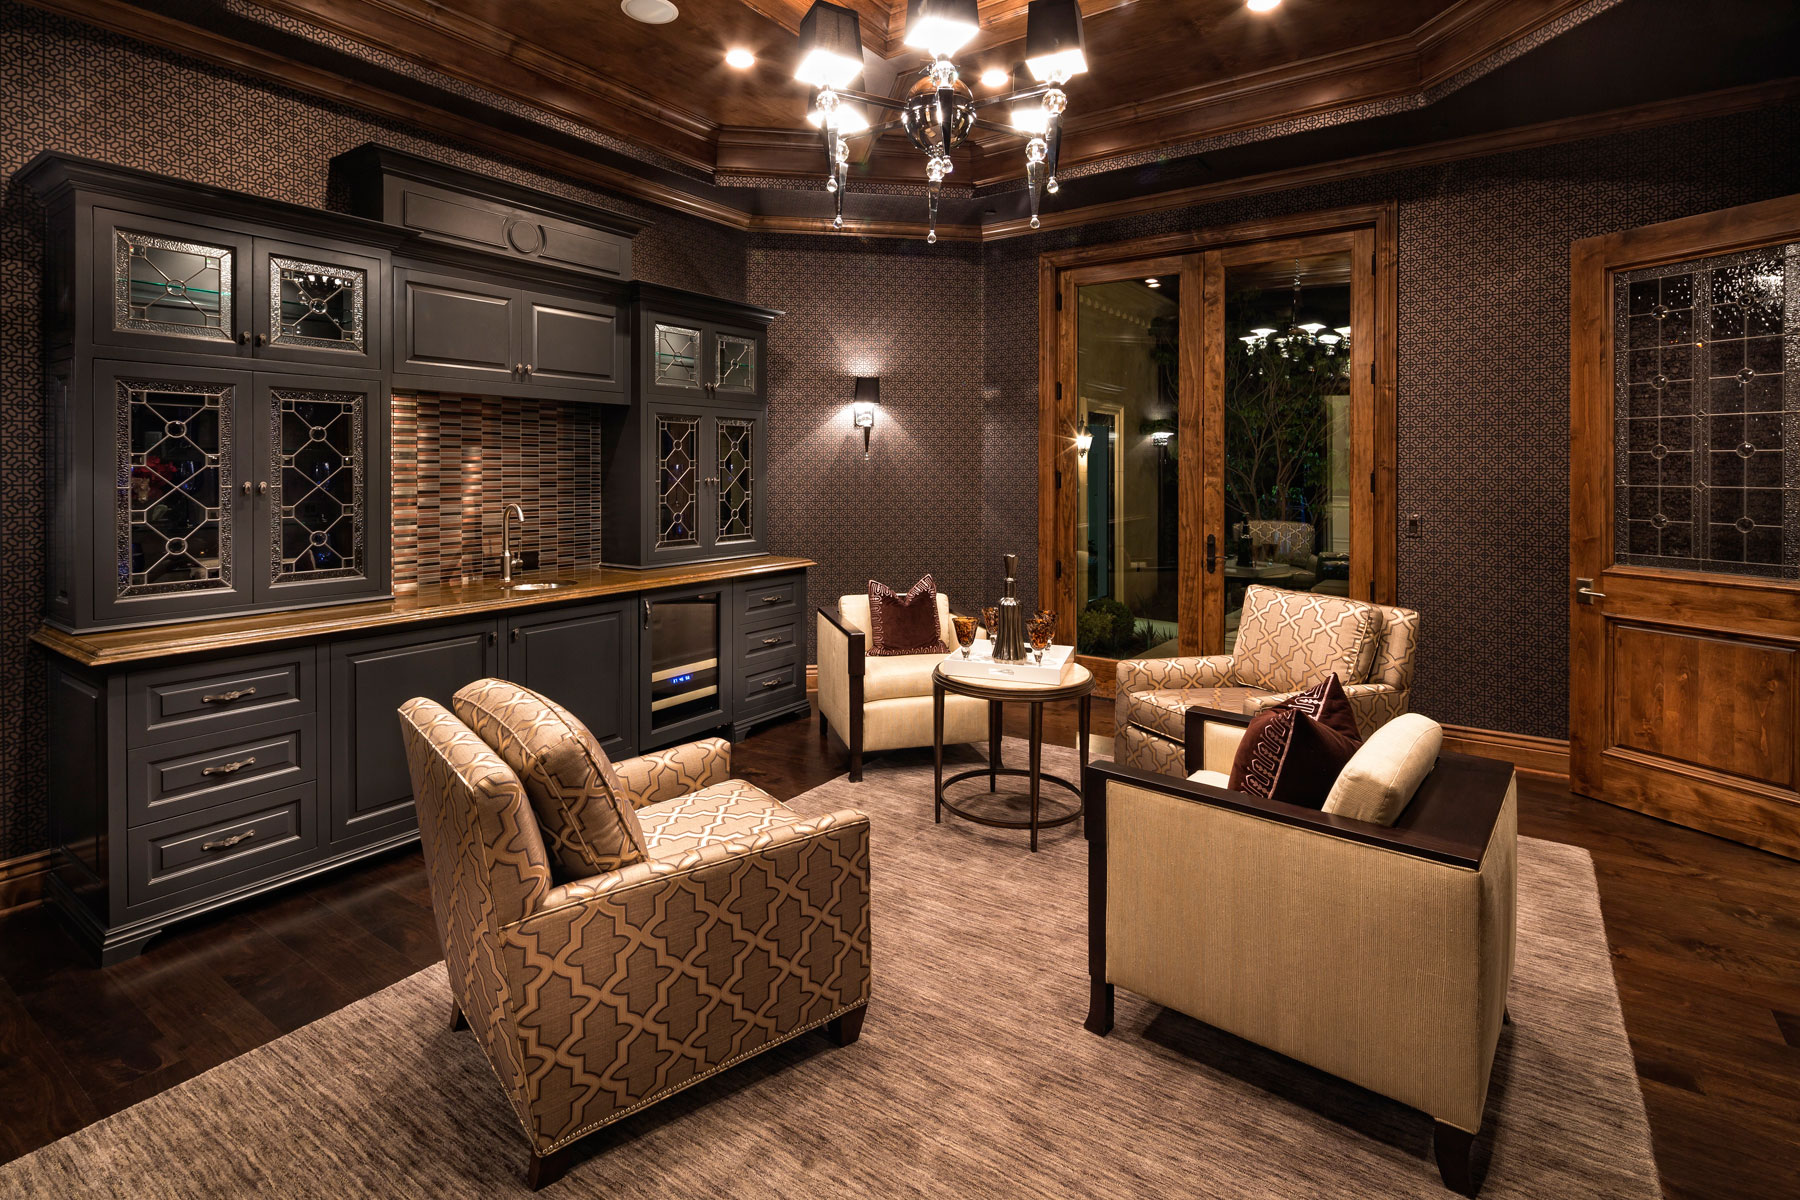 wood-1 living room wallpaper tips and ideas for your walls